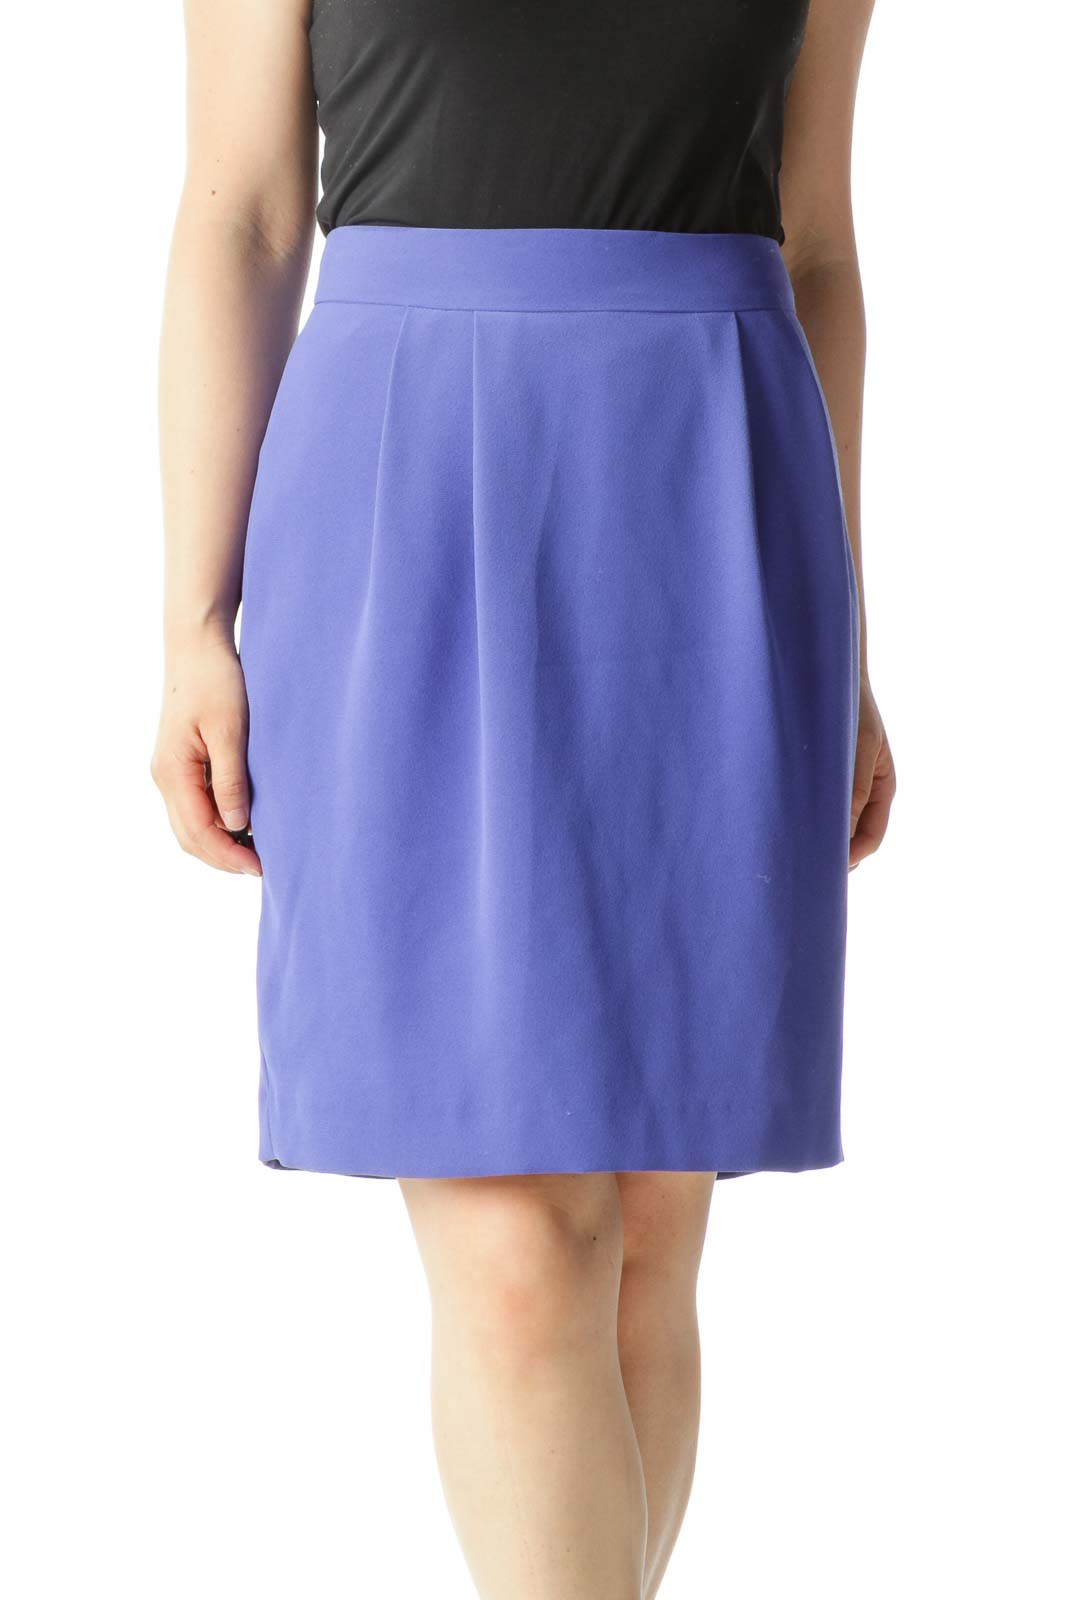 Blue Pleated Zippered A-Line Skirt